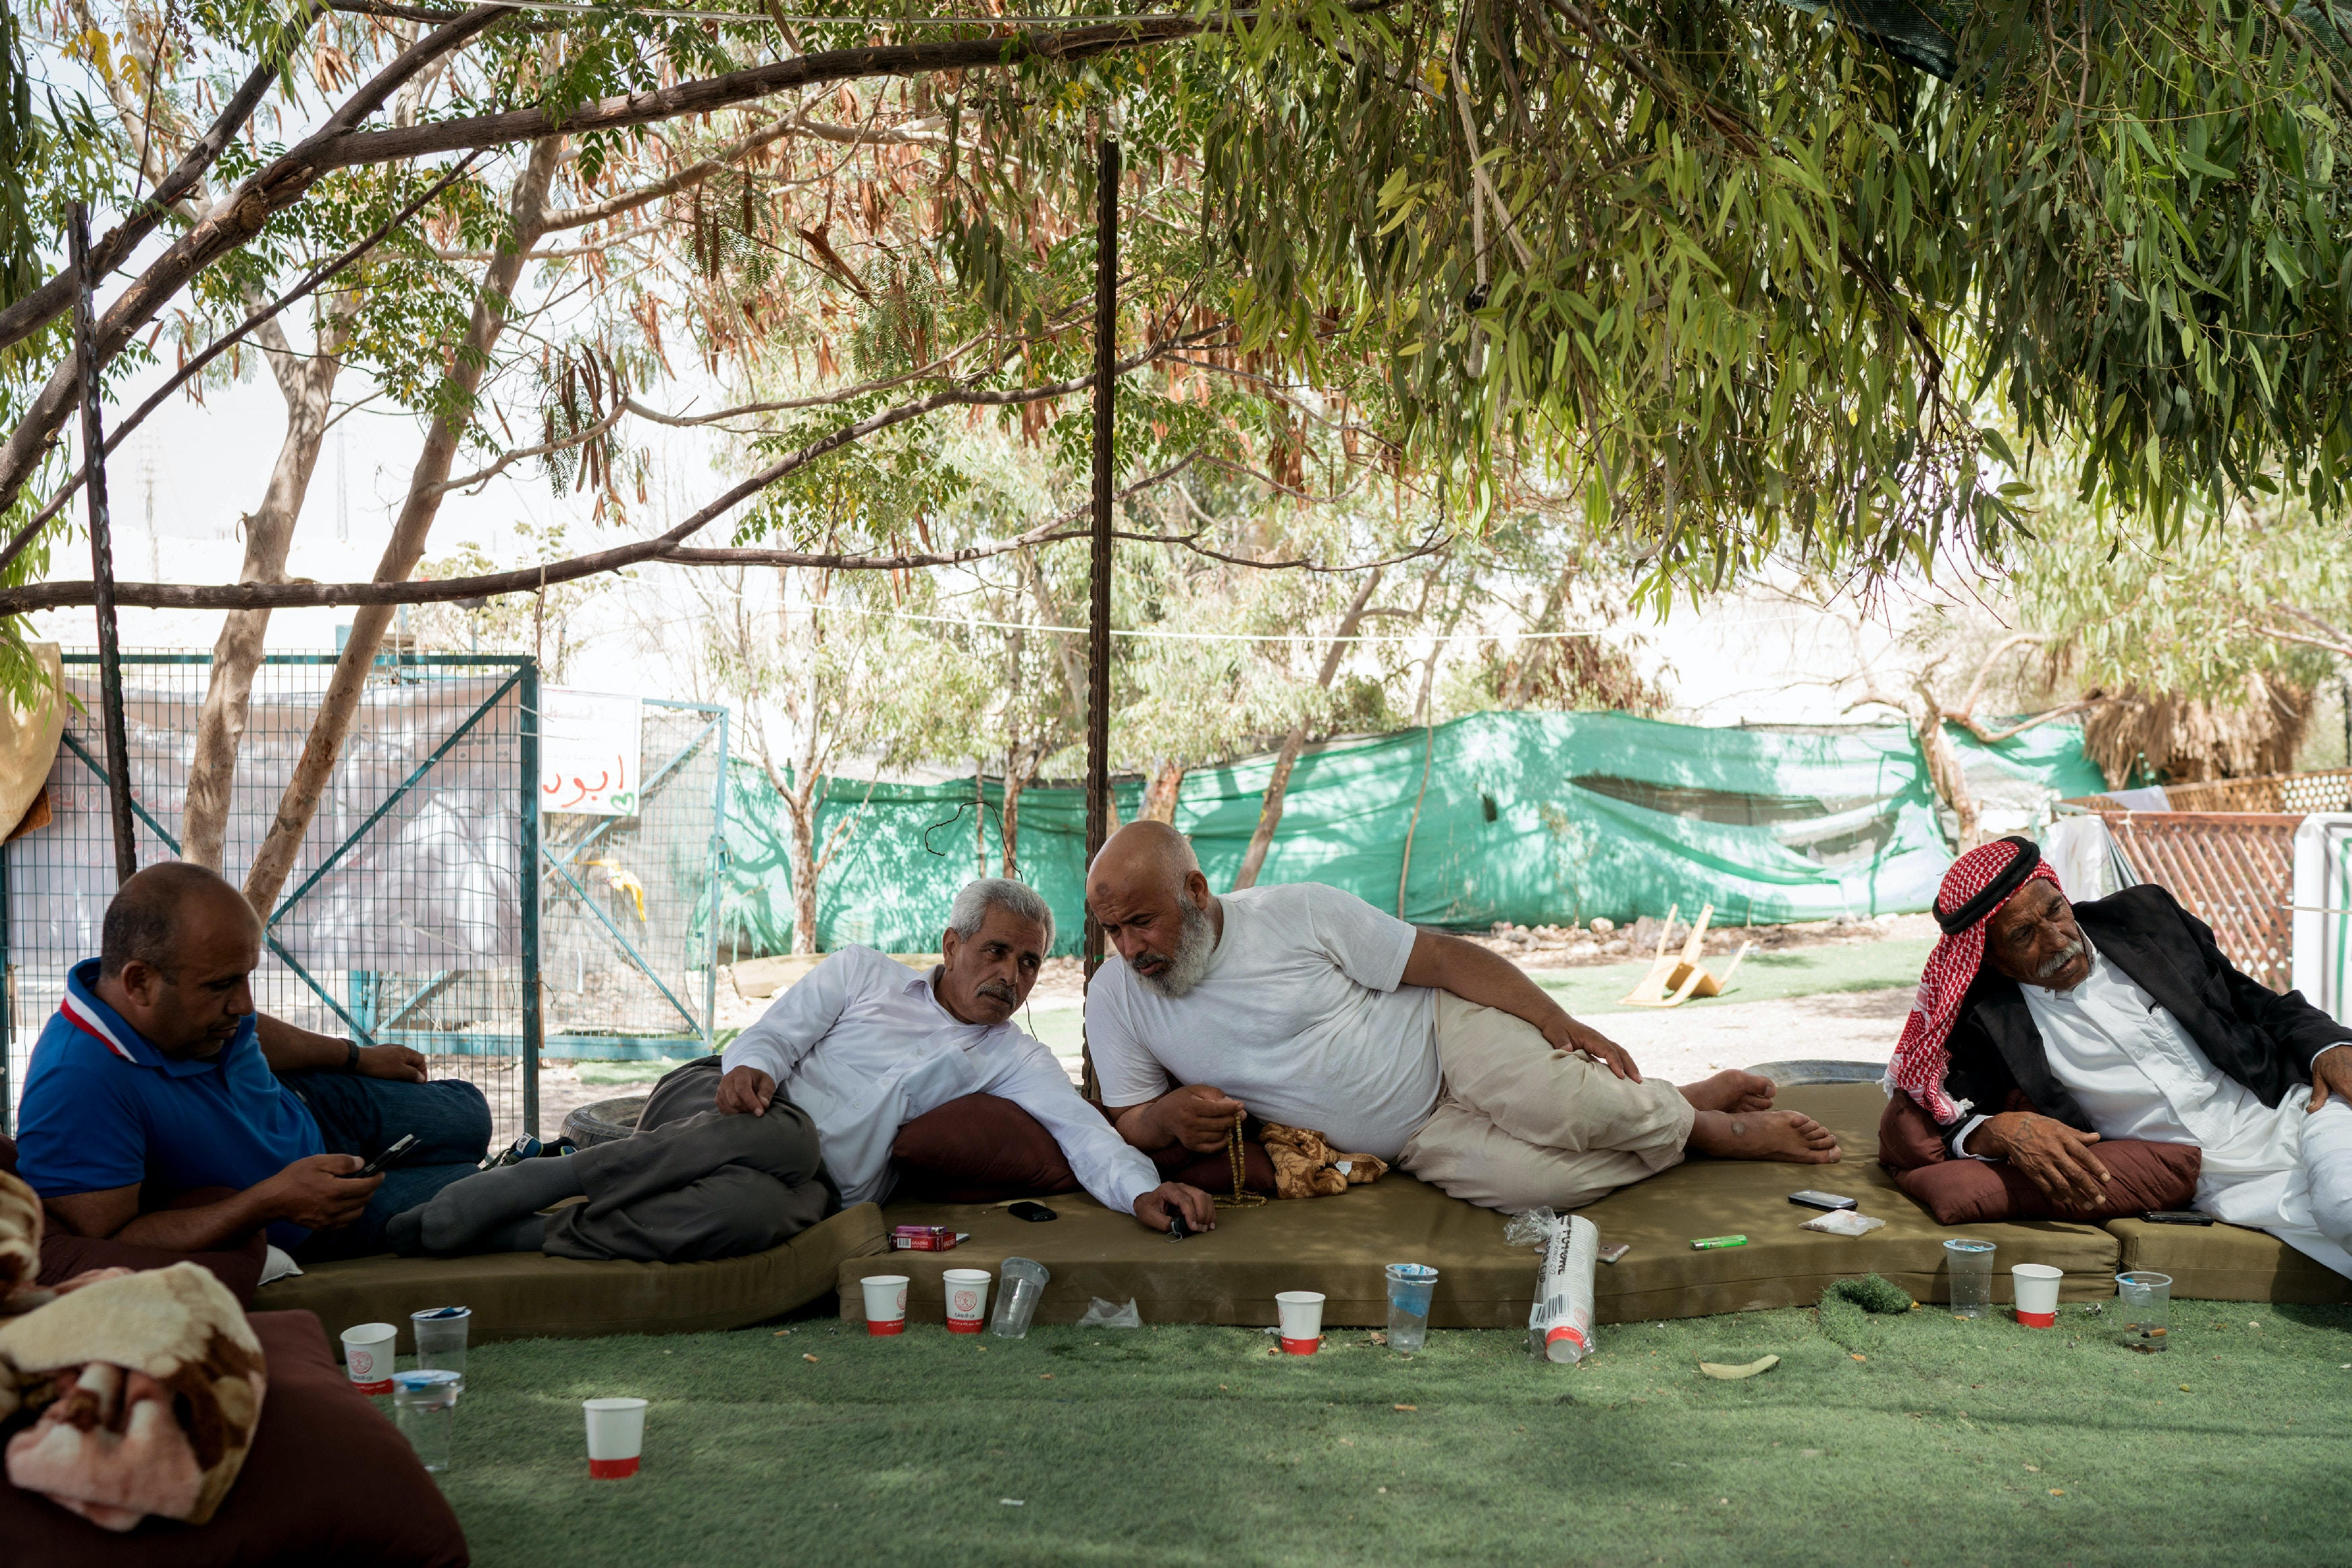 Palestinian Bedouin men sit together at the Al-Khan Al-Ahmar village on July 26, 2018.